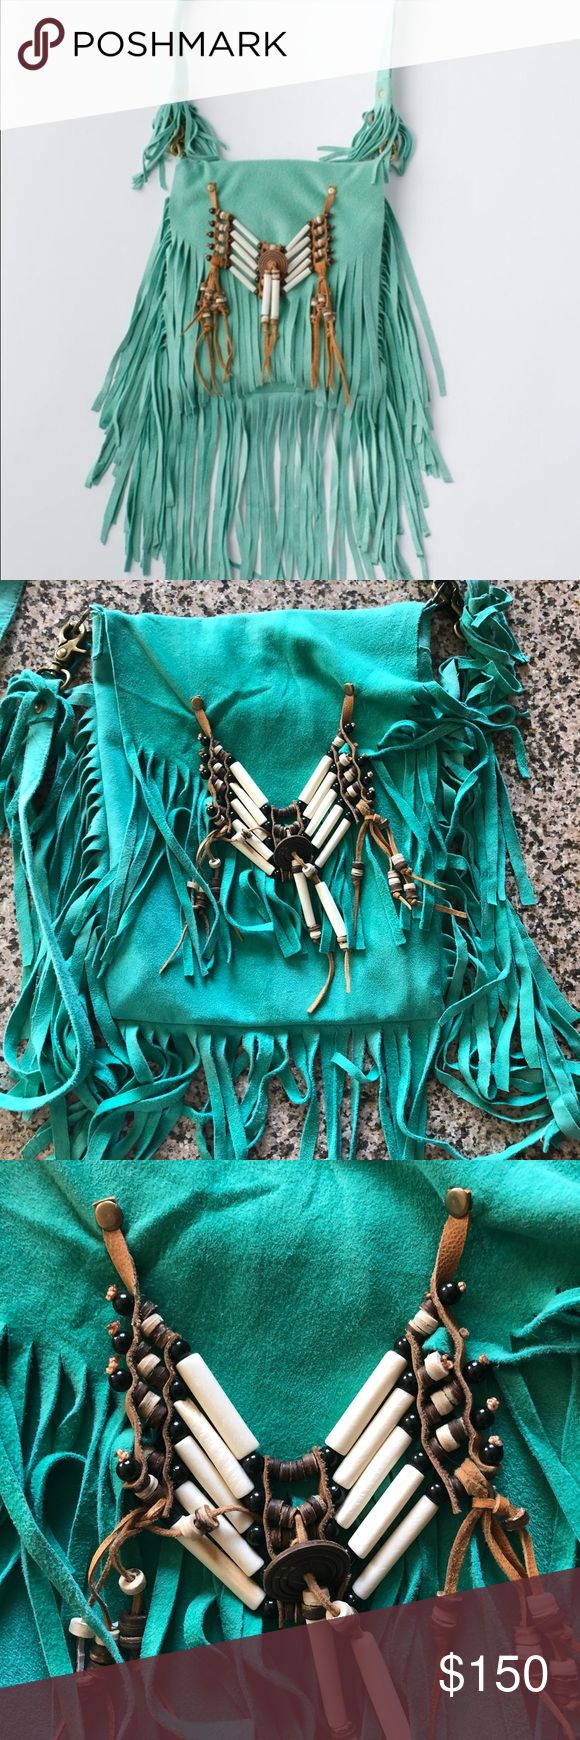 Spell turquoise bone tassel bag Used one time. All I could find was a few transfer spots on the back of bag(last photo) front and inside is in great shape. Size is about as tall as a business envelope (as pictured) so soft! Cross body strap. Will only trade for other Spell.   🦄 unicorn I'd swap full or partial for: Amber babushka Forever lovers tee small-XL Xanadu maxi Folktown blossom  Jagger  Vintage tees tanks (Spell) Saphari  Kimonos (kombi, creamGQ, jagger,babushka) Video all…